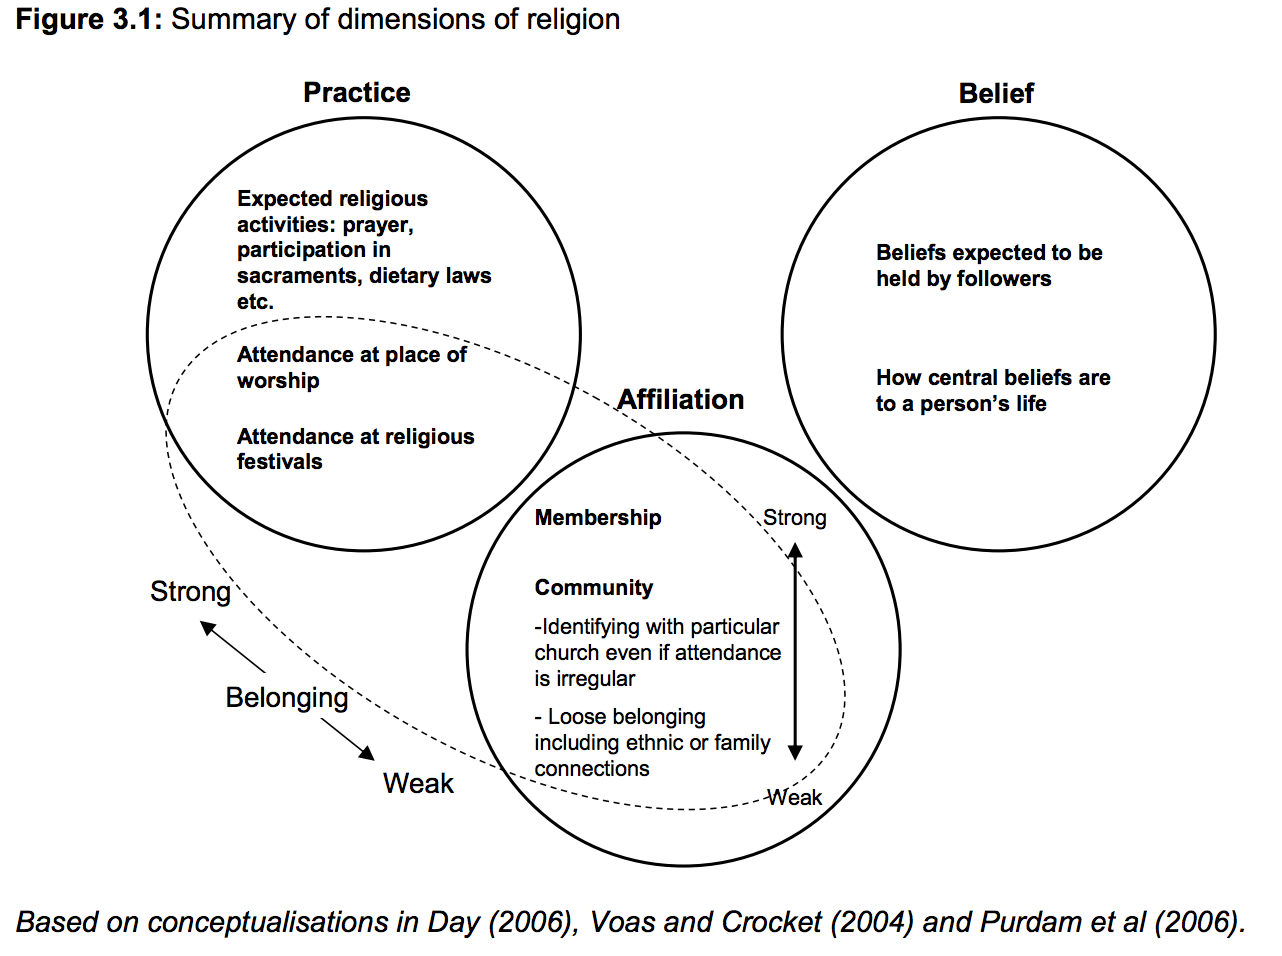 The dimensions of religion discussed by the ONS in preparation for the census.